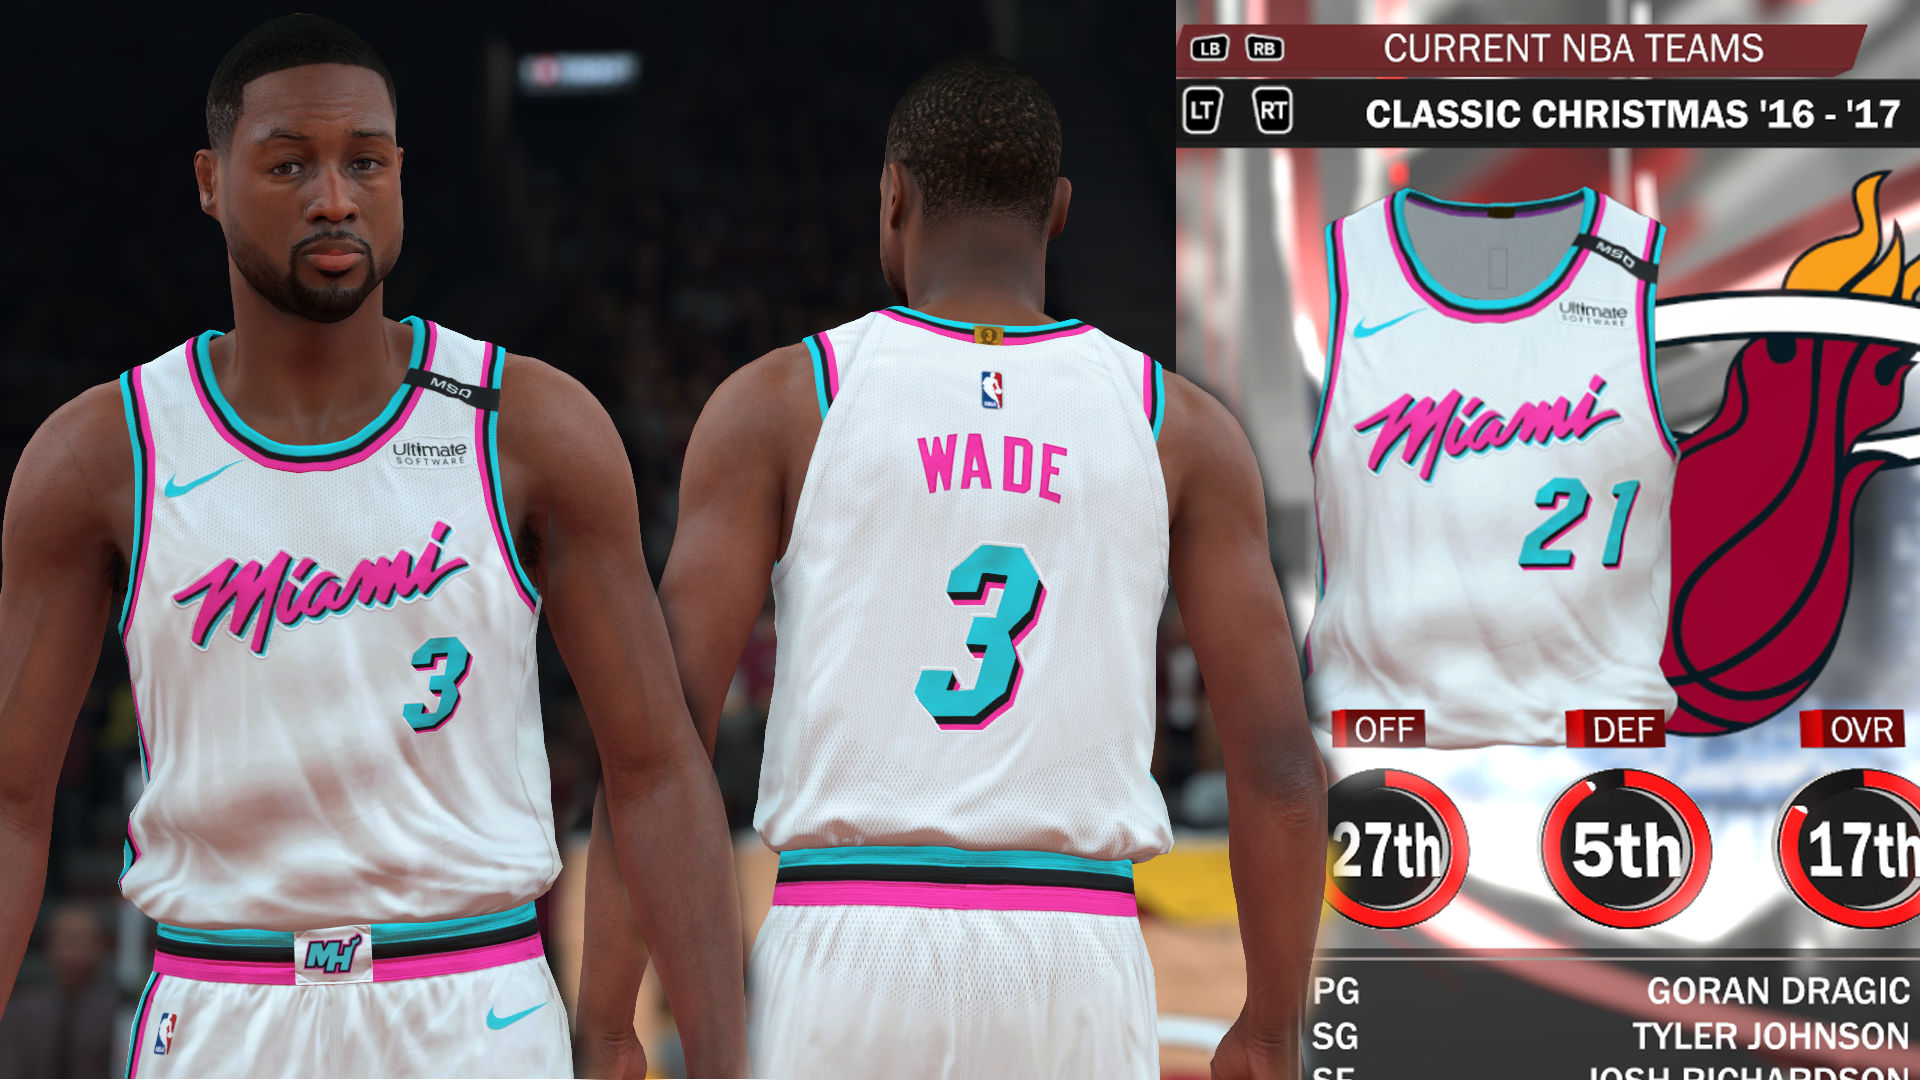 Miami Heat Vice City Jersey with MSD Patch (pinoy21)